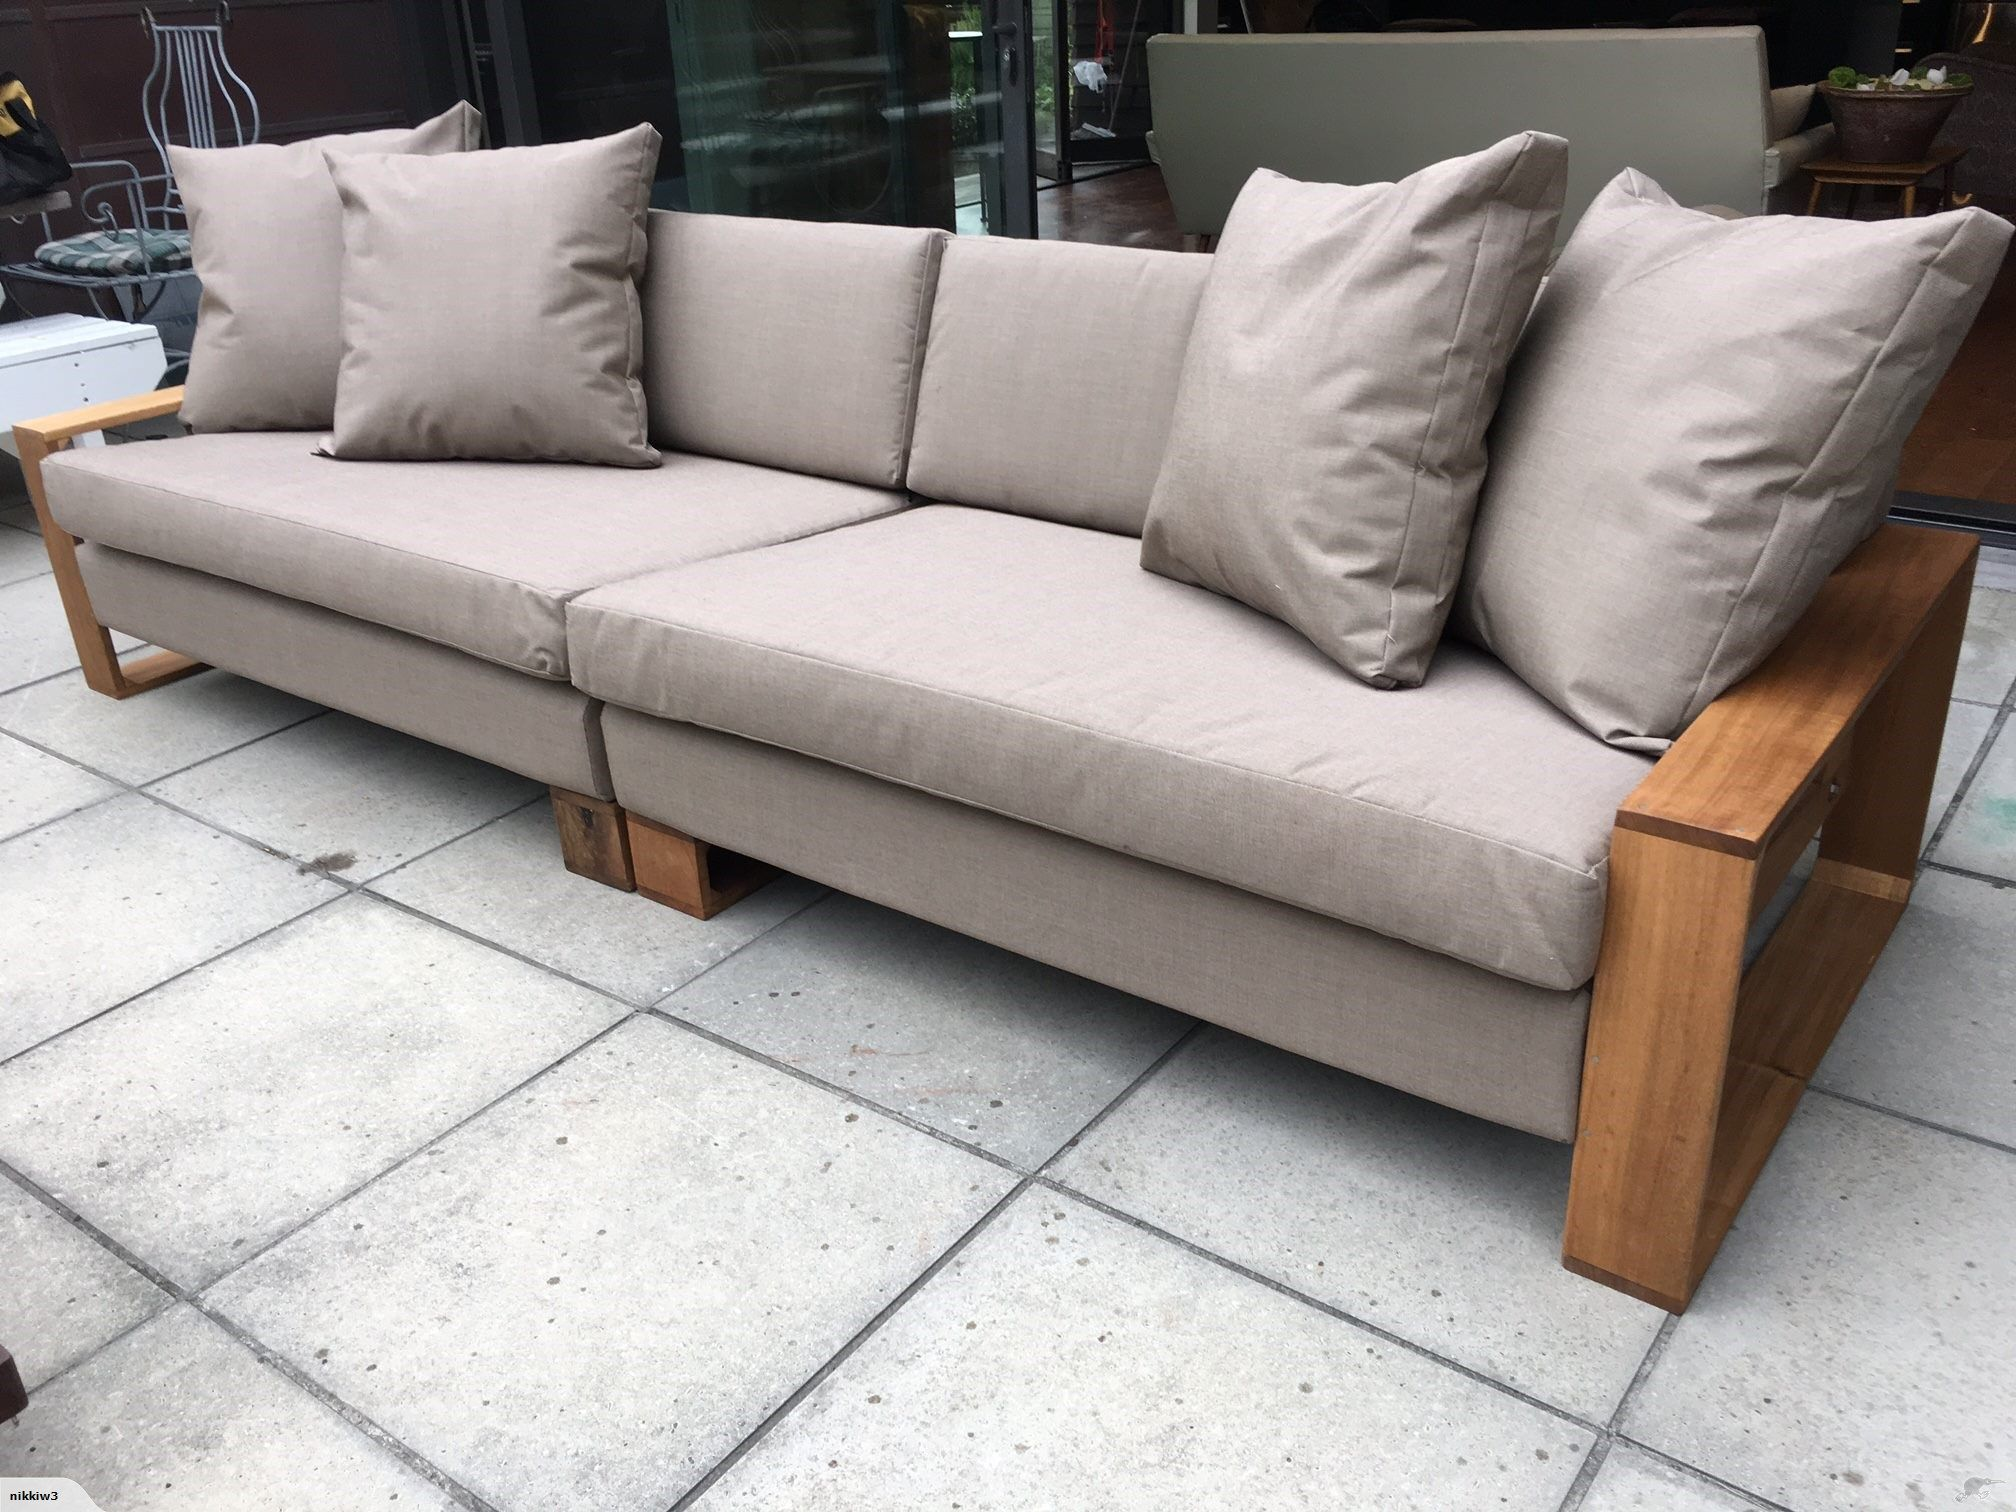 2 x 2.5 seater modular indoor / outdoor couch | trade me